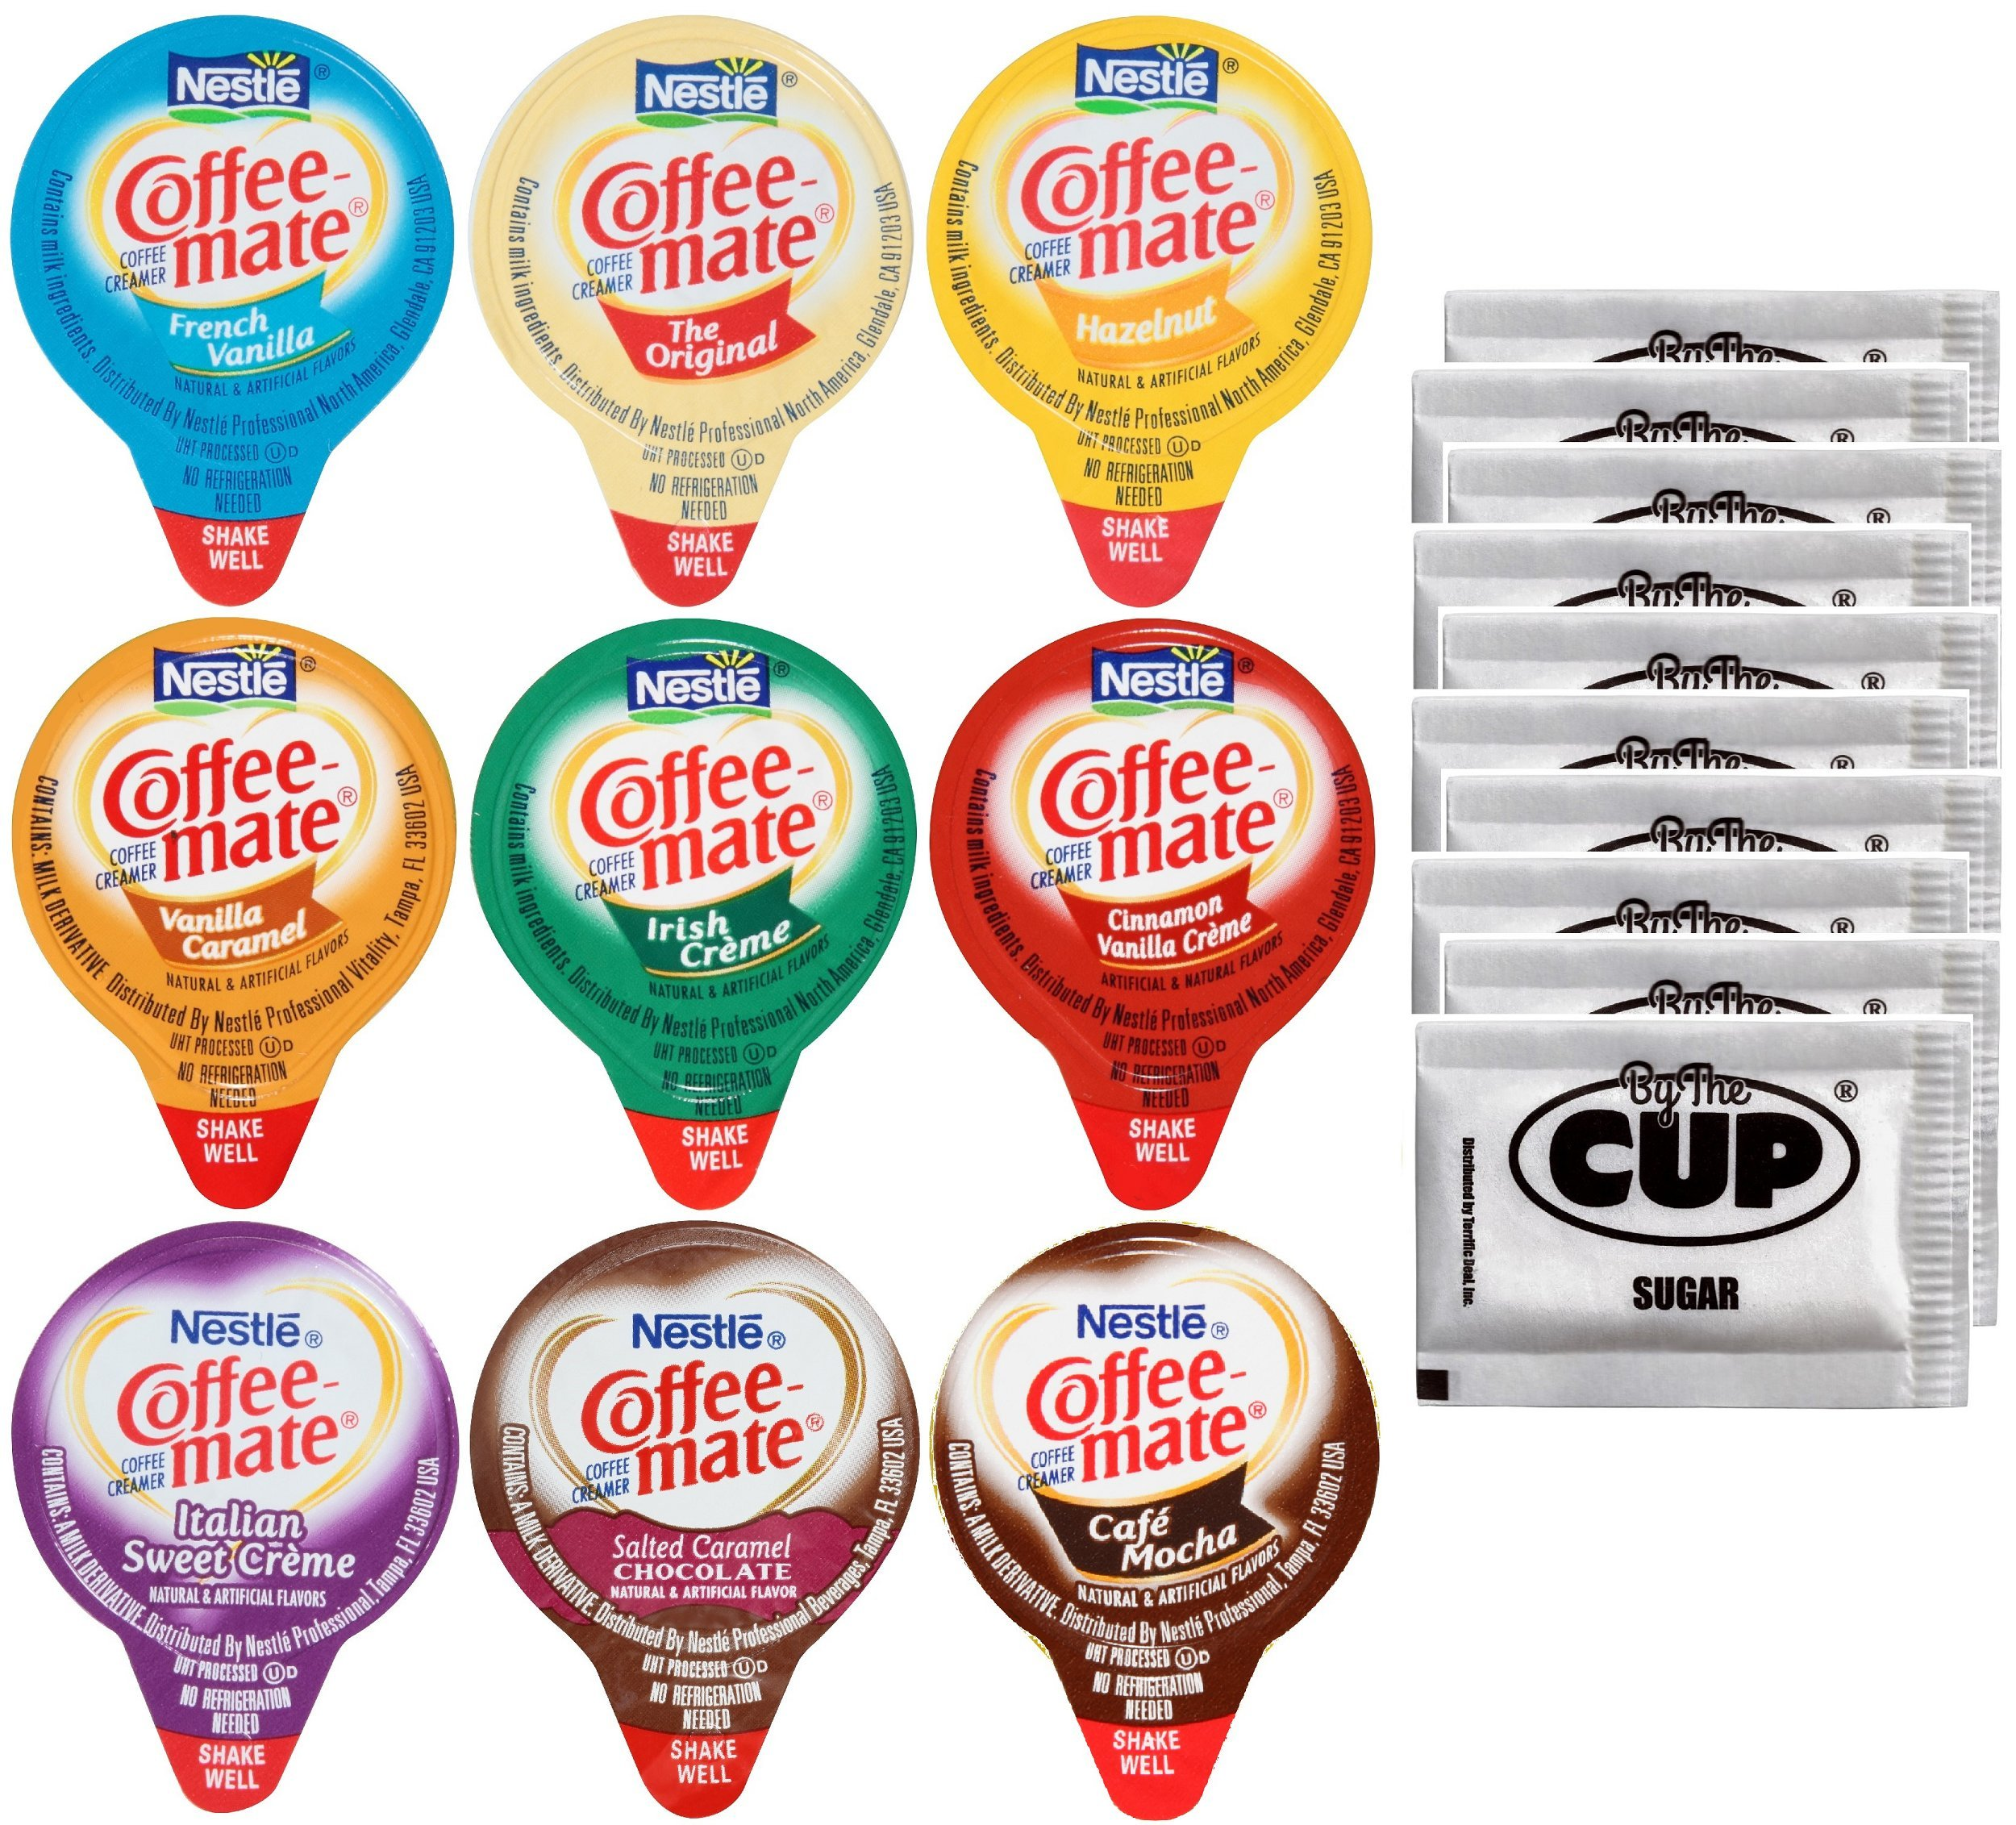 Coffee Mate .375oz Non-Dairy Liquid Creamer Singles - 9 Flavor Assortment, Hazelnut, French Vanilla, Original, Salted Caramel and more (36 Pack) - Exclusive By The Cup Sugar Packets